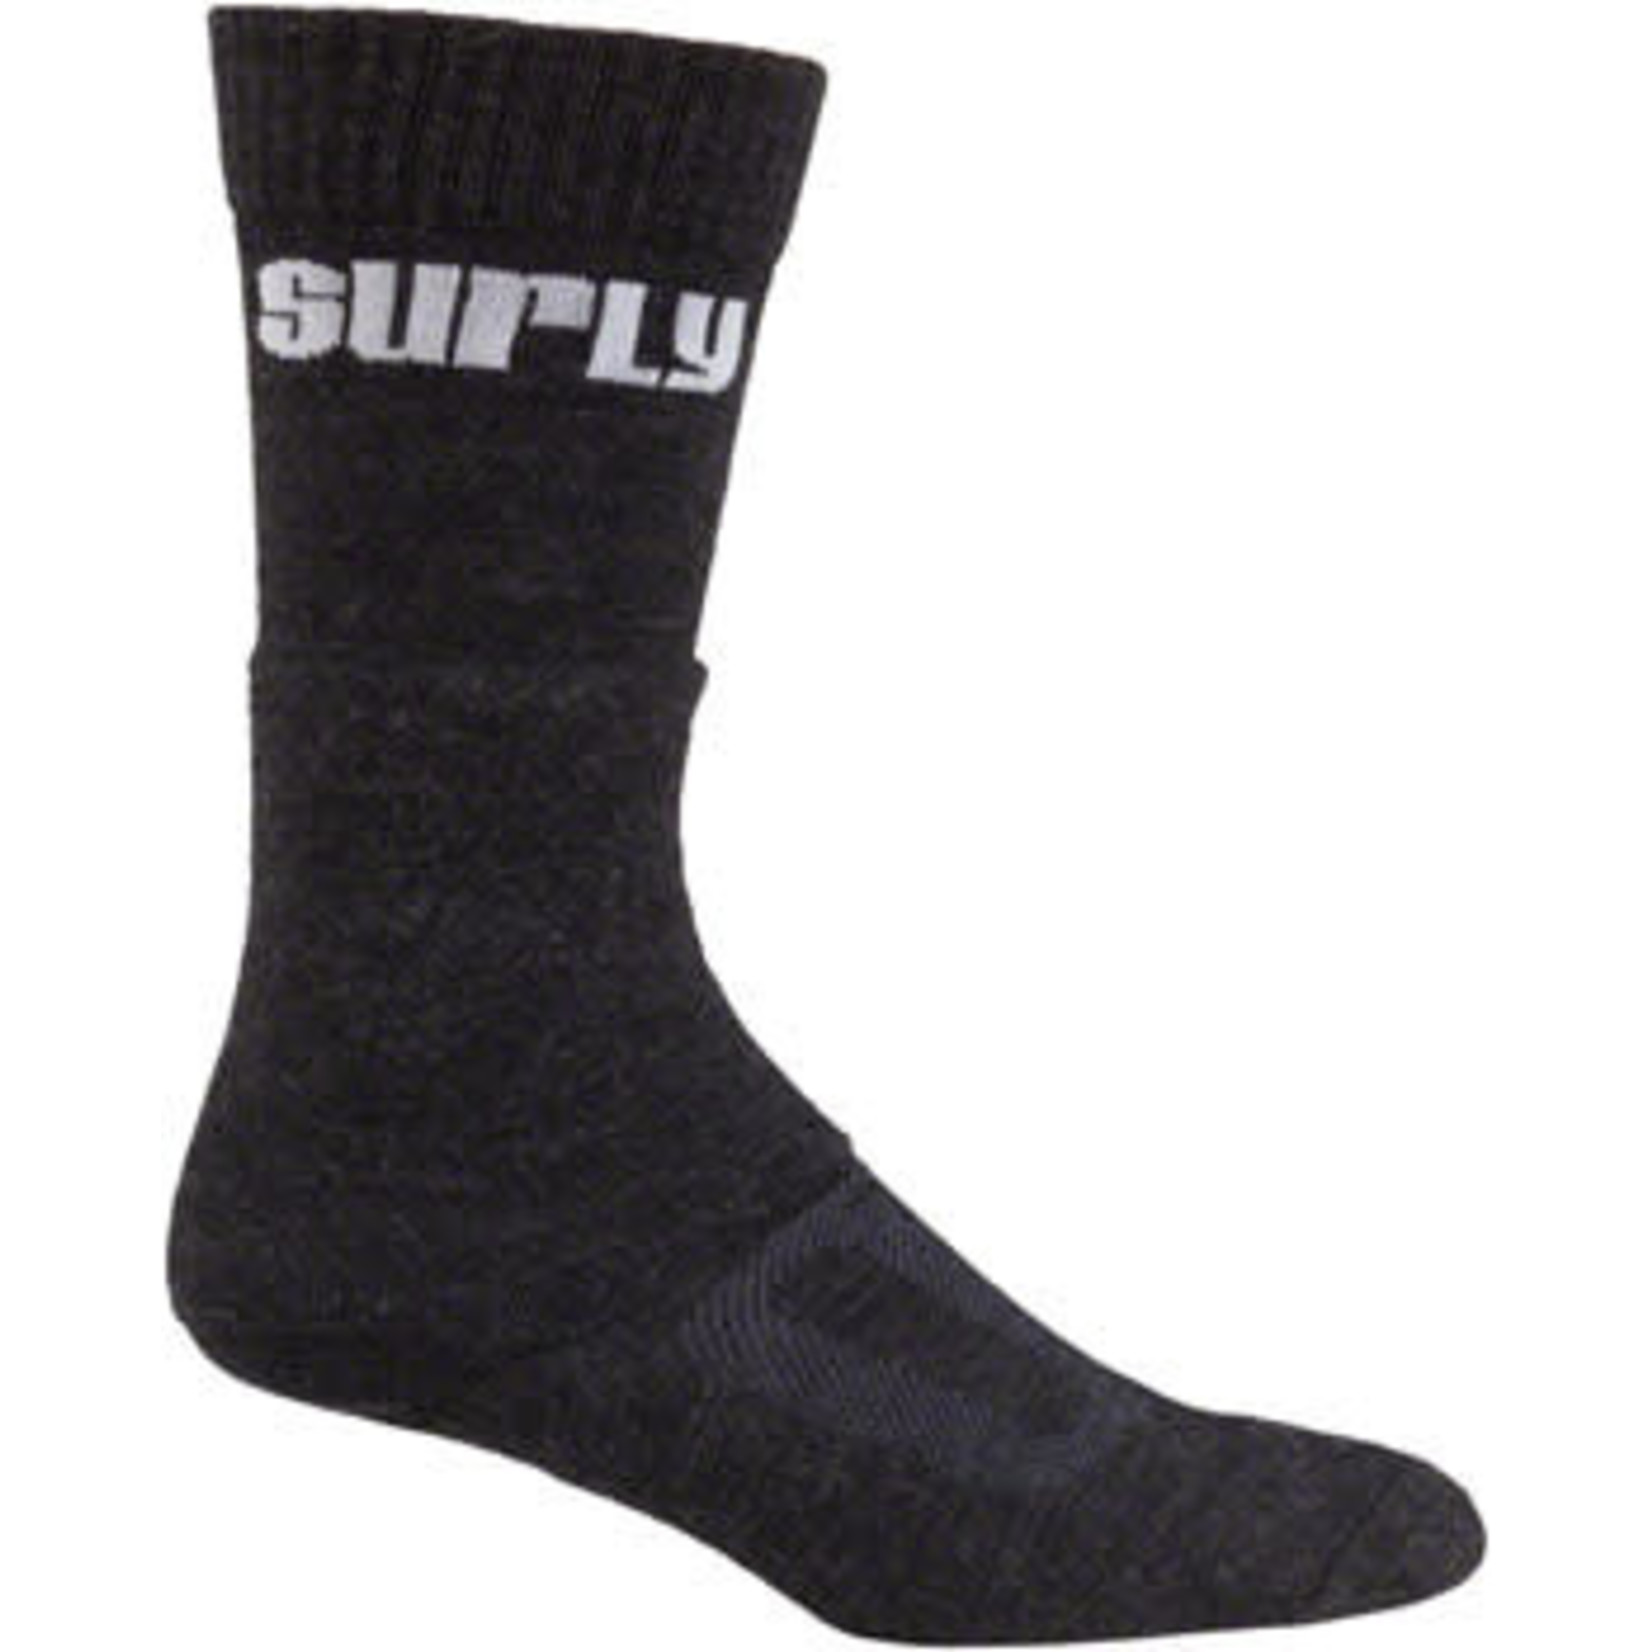 Surly Surly Tall Logo Wool Socks - 8 inch, Black, Large